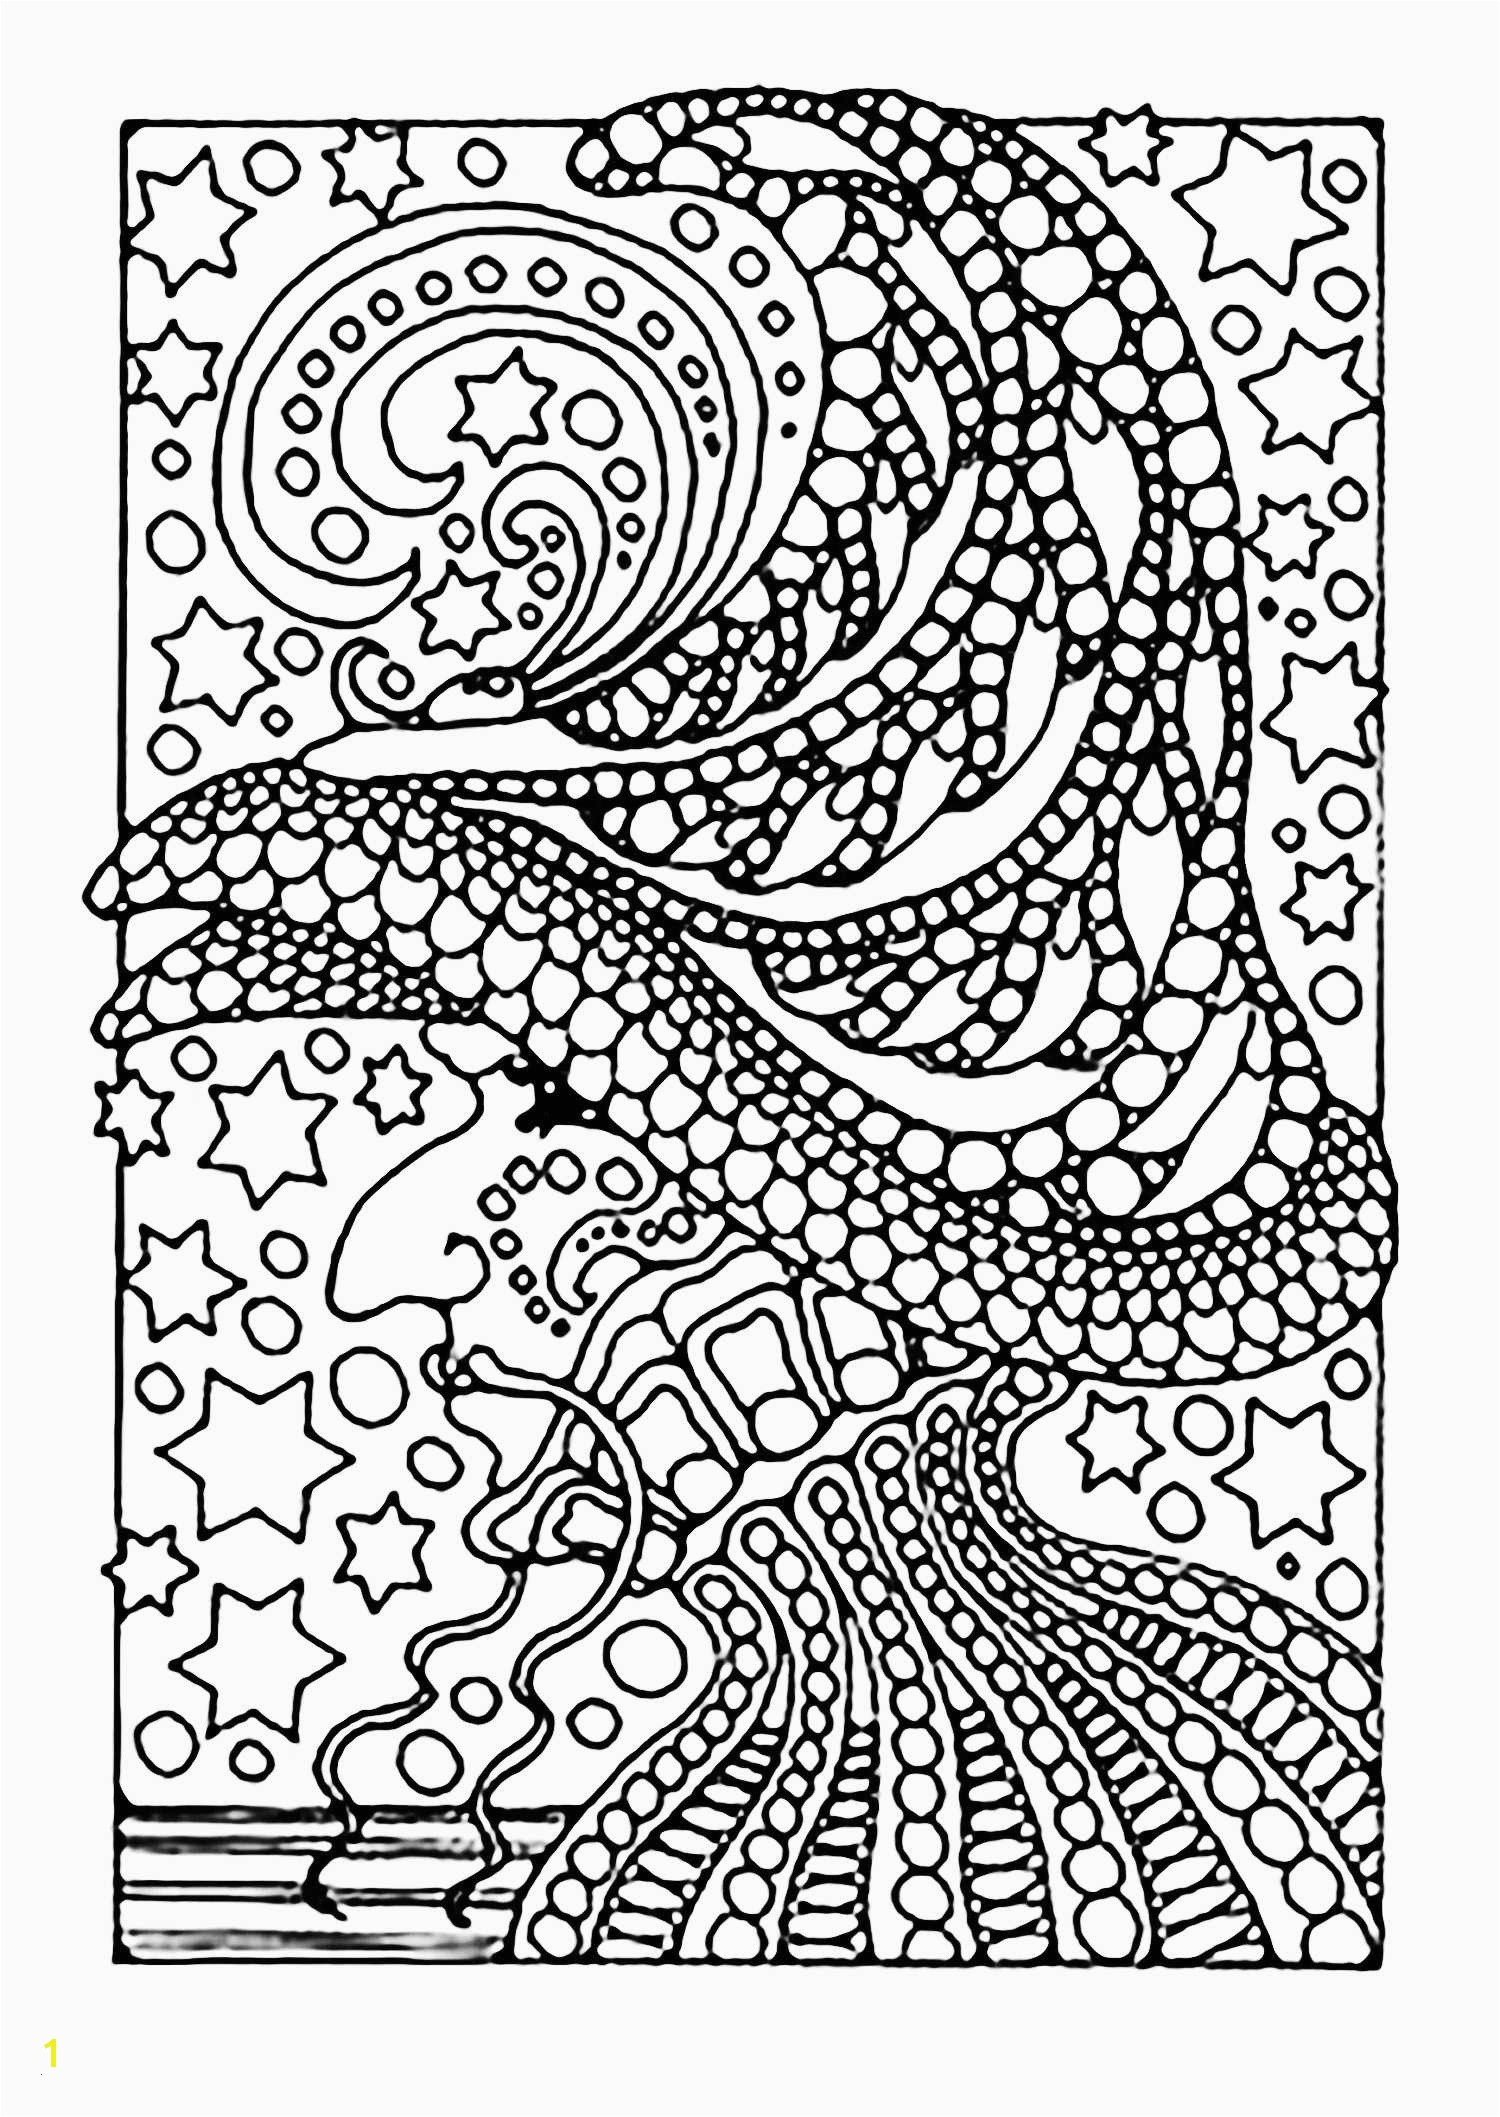 Kickball Coloring Pages Intricate Coloring Pages Inspirational Cool Coloring Page Unique